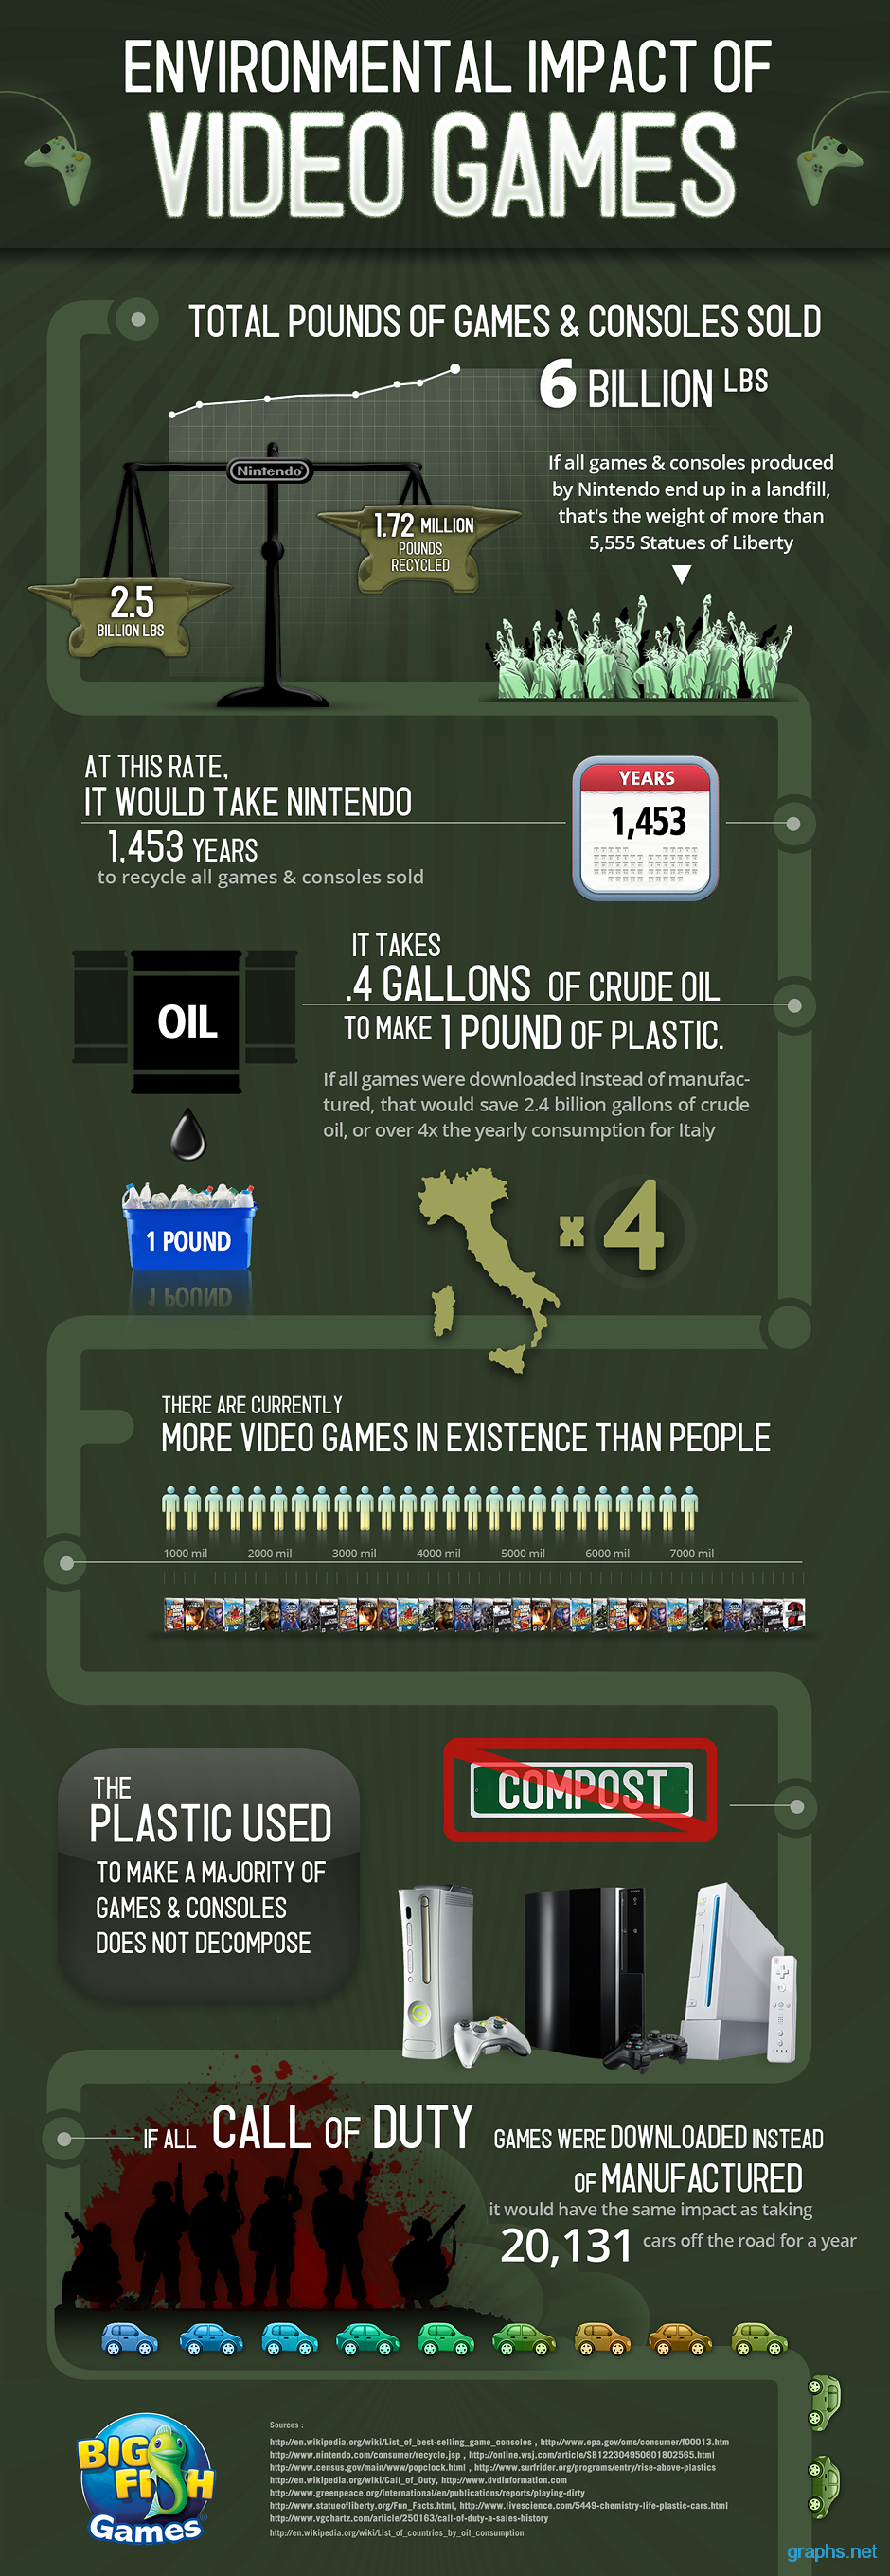 Video Games Impact on Environment Infographic